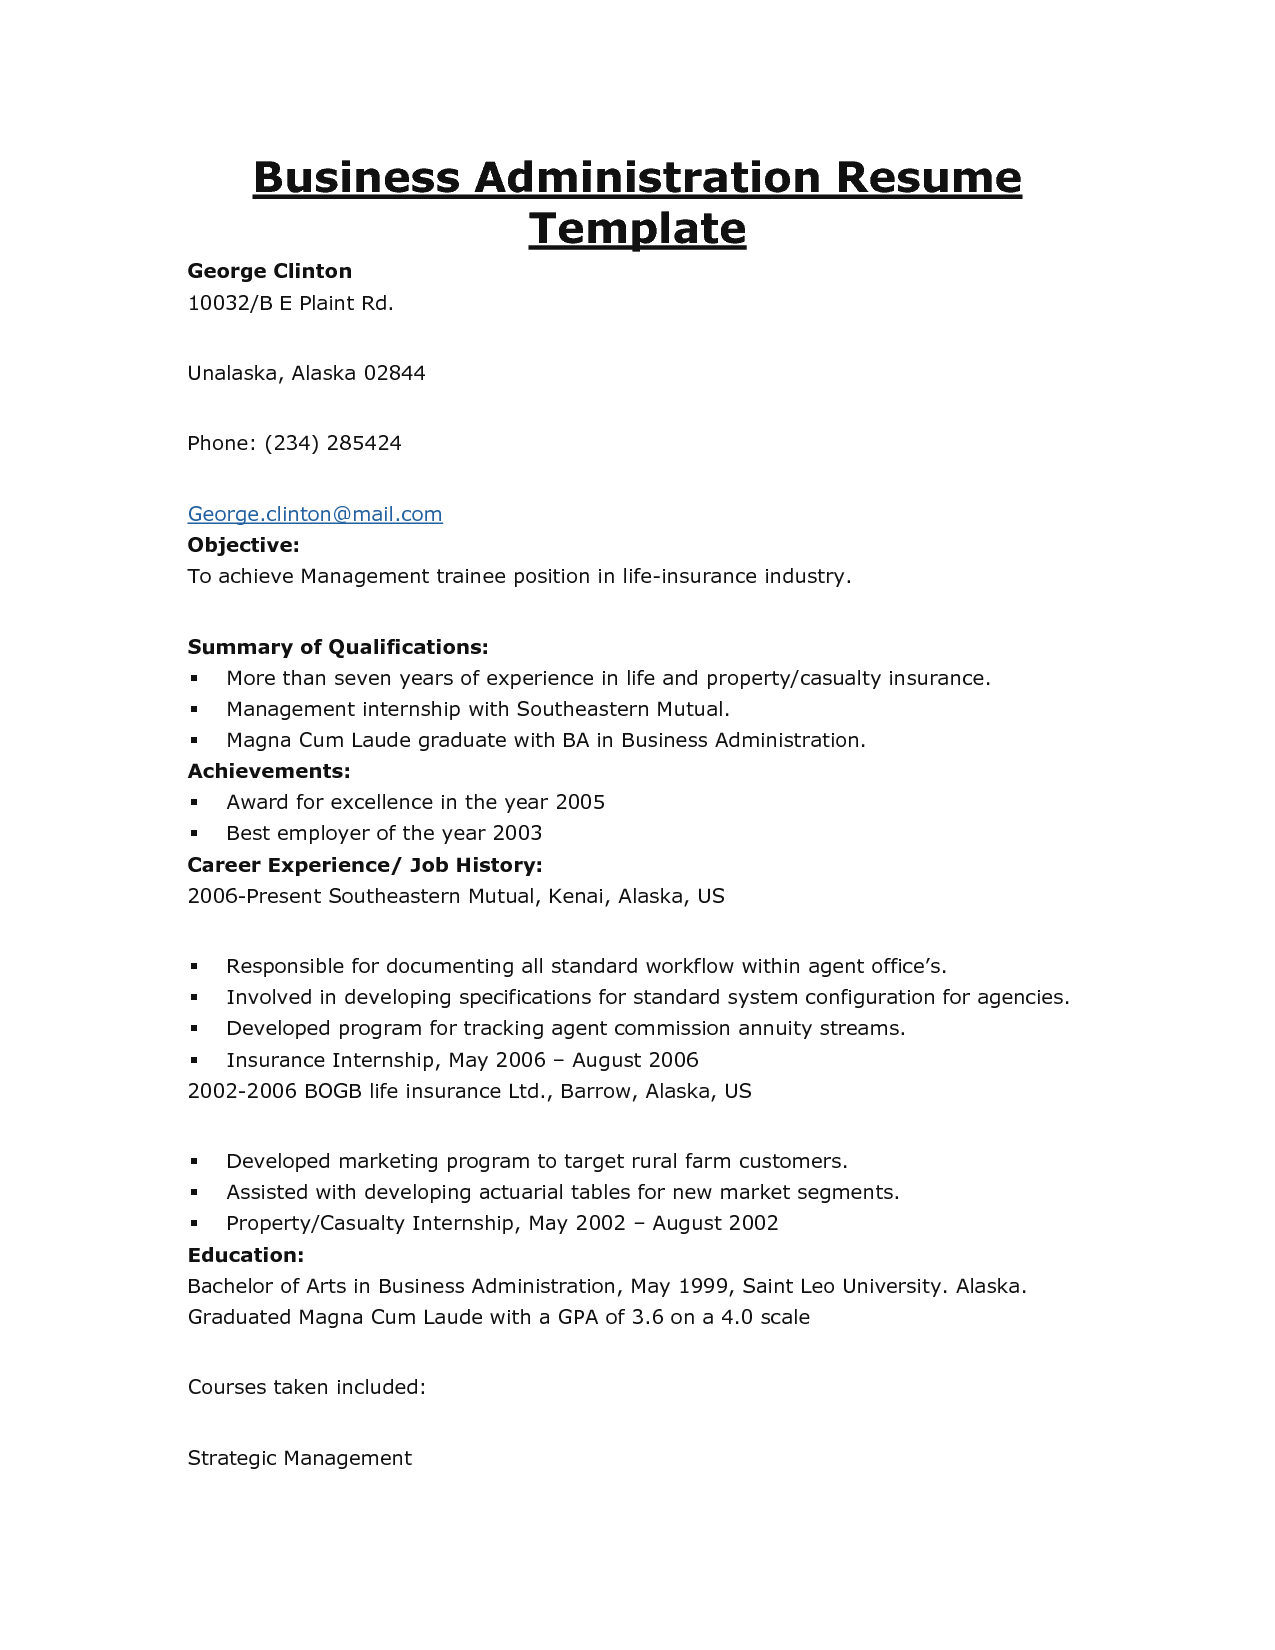 Business Management Resume Samples Pleasing Resume Examples Business Management #business #examples #management .